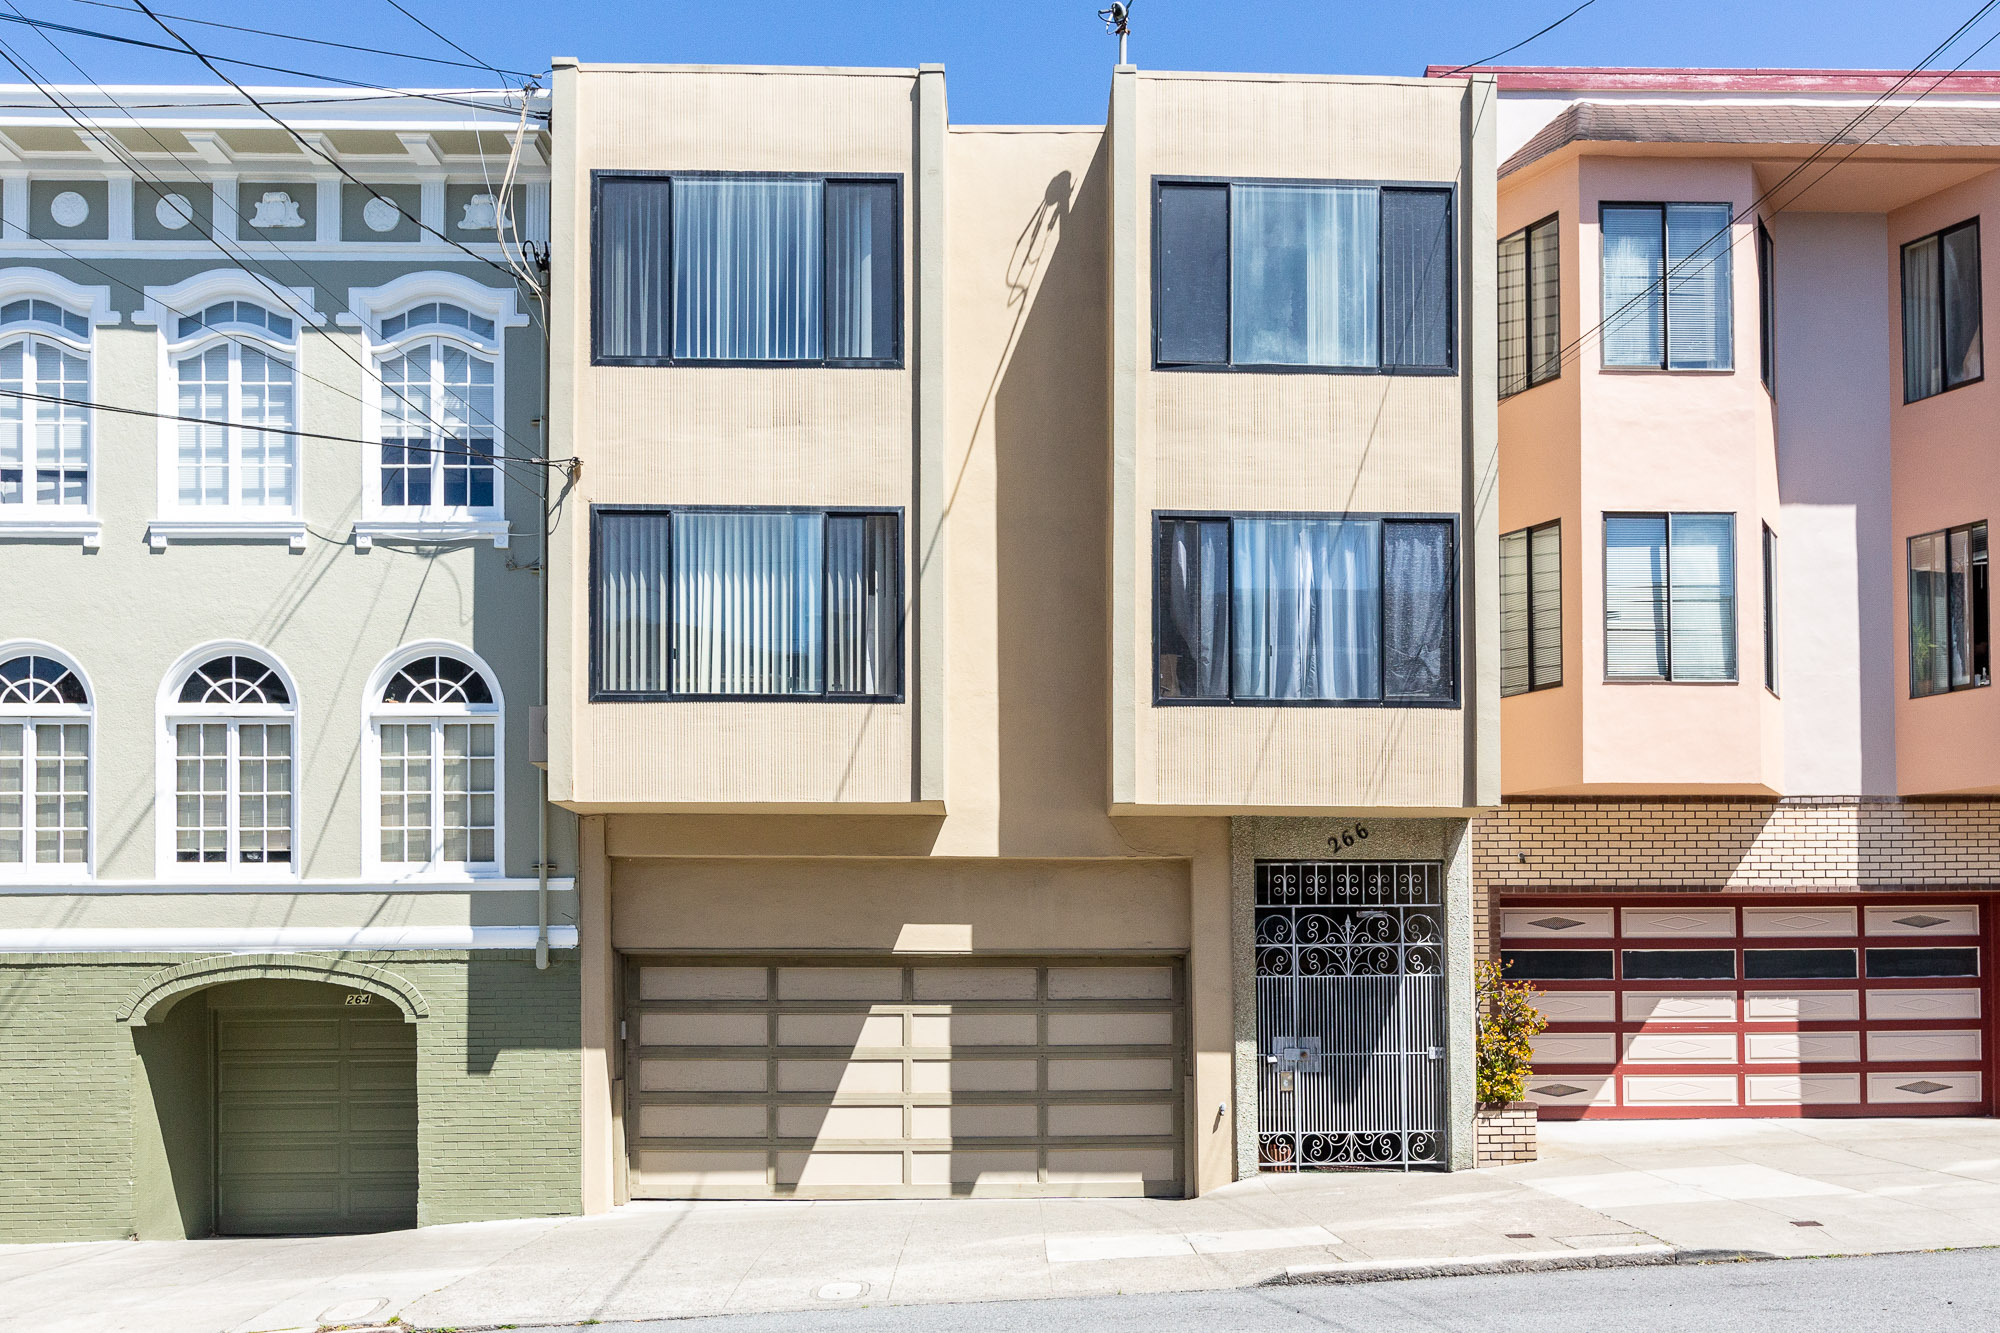 266 19th ave, san francisco, ca